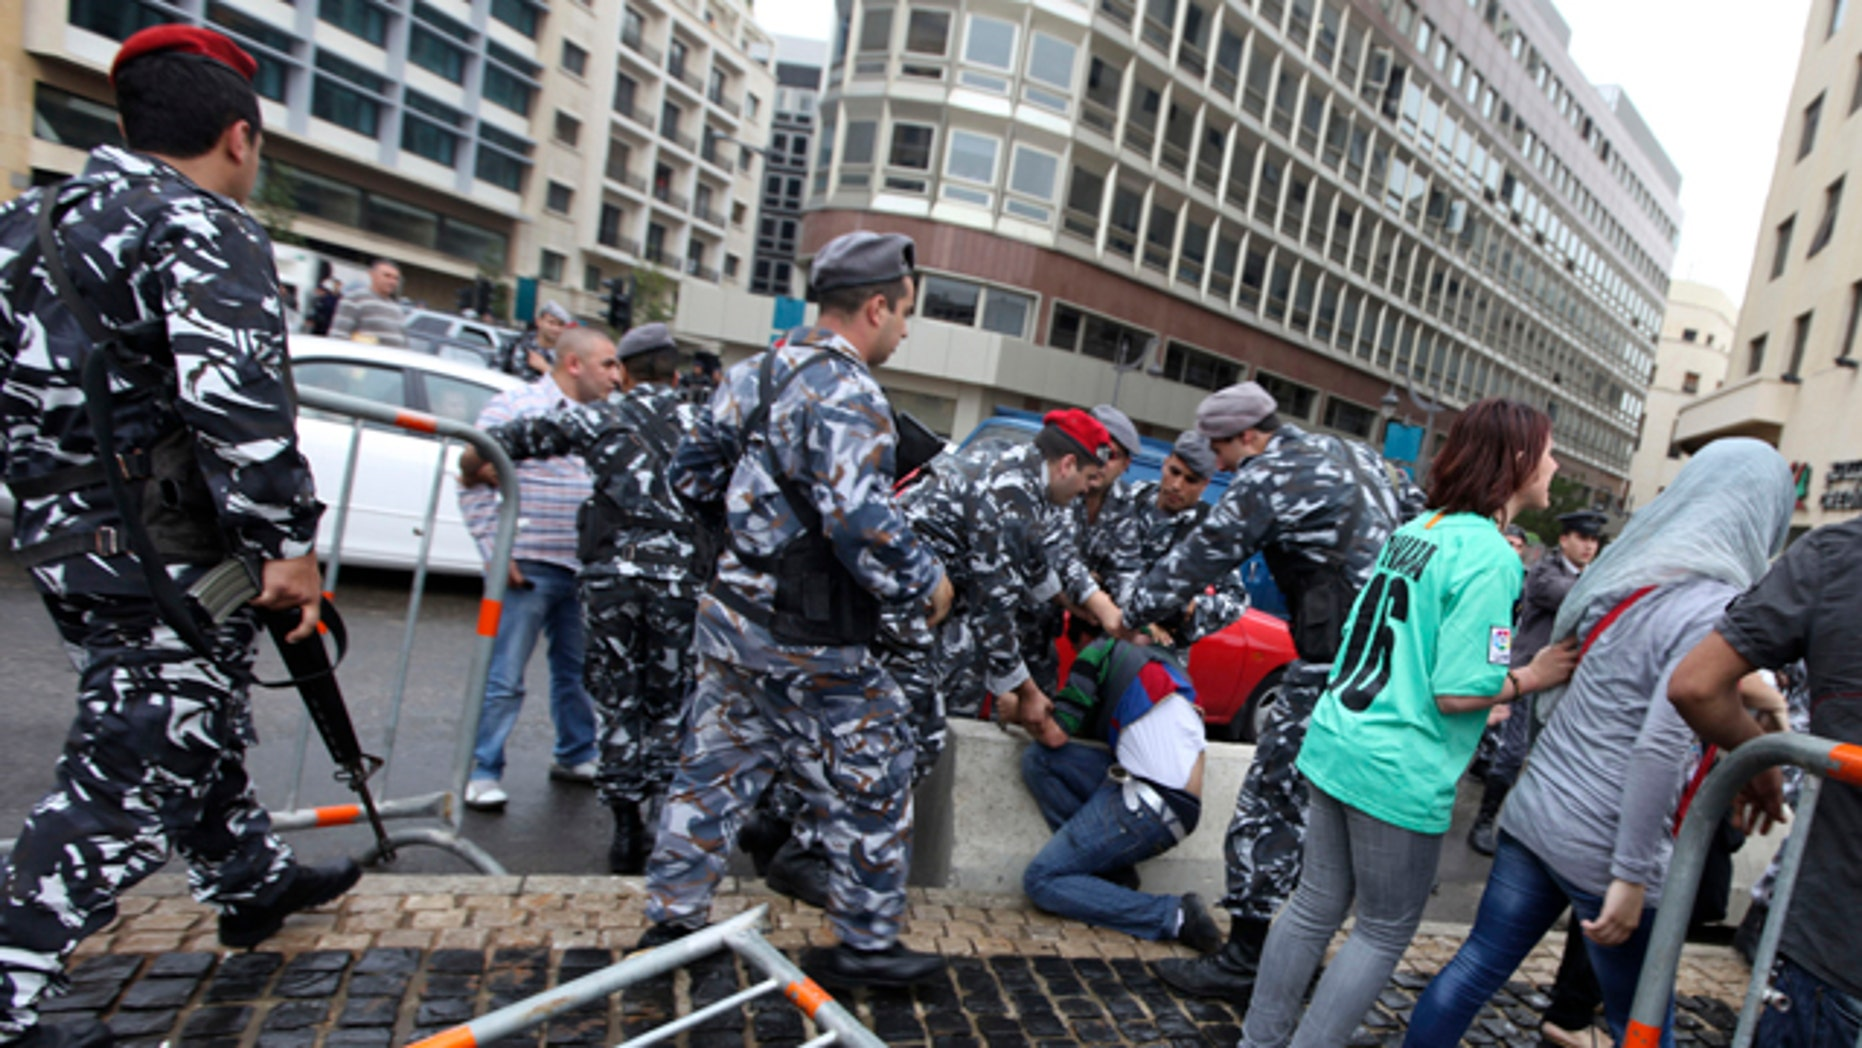 April 28: Lebanese police arrest a man as protesters tried to block a road during a sit-in against the sectarian makeup of Lebanon's government in Beirut, Lebanon. (AP)